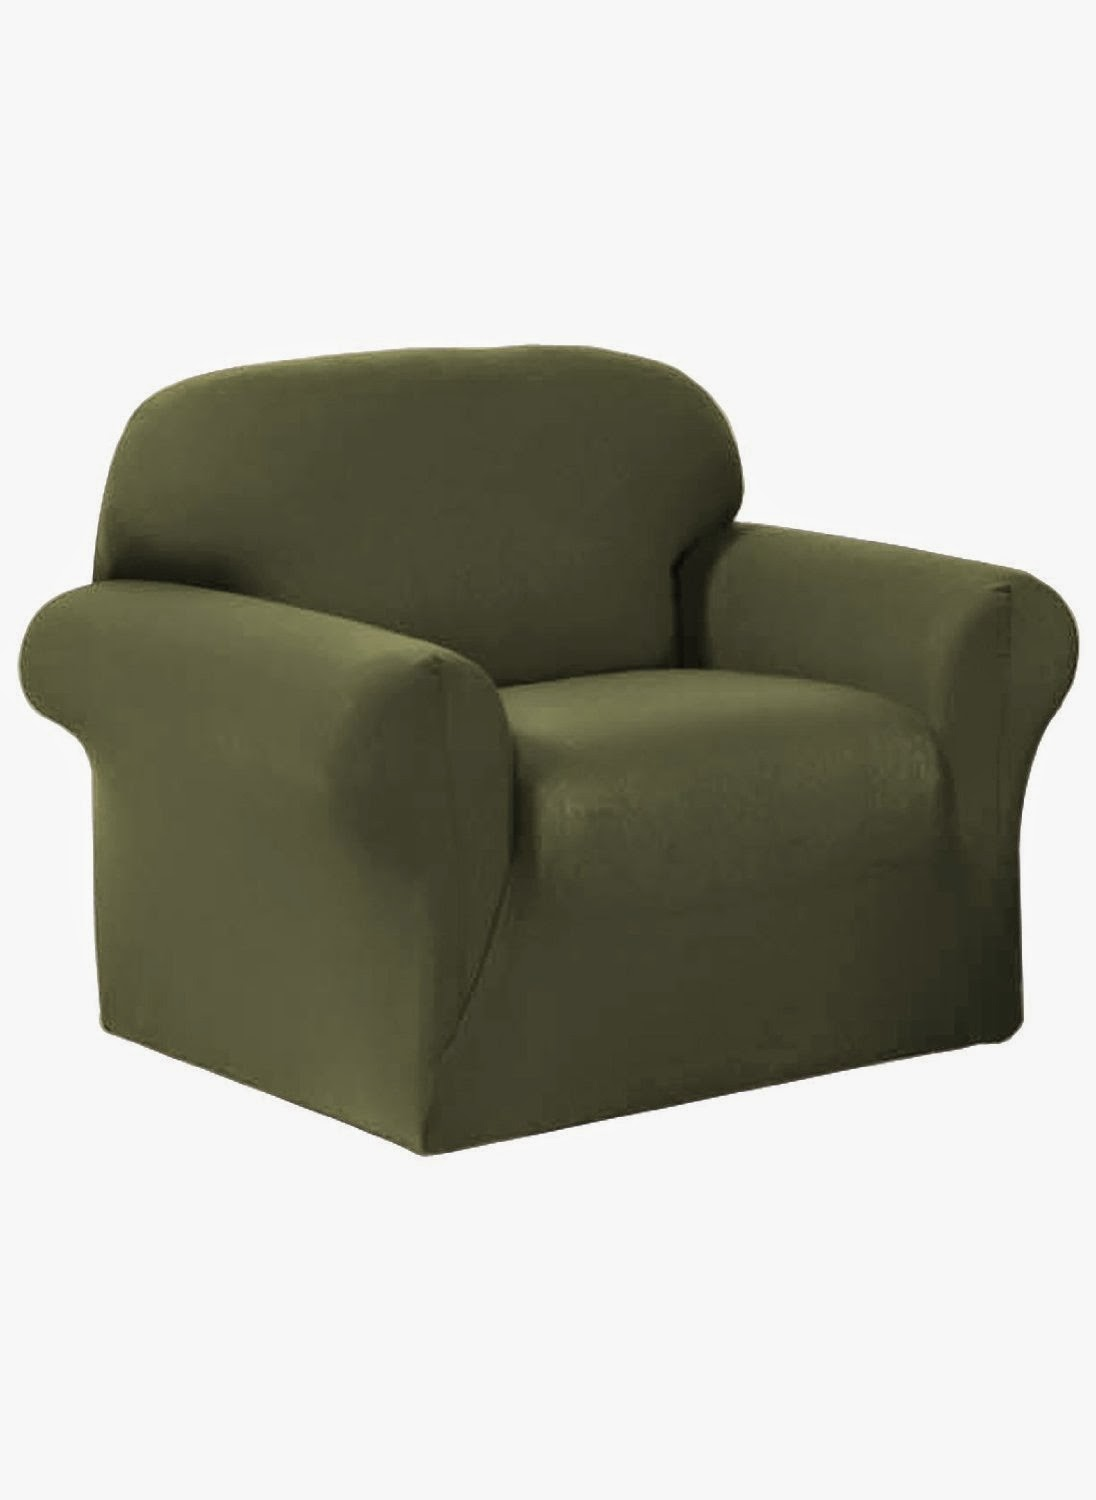 Cheap Recliner Sofas For Sale April 2015